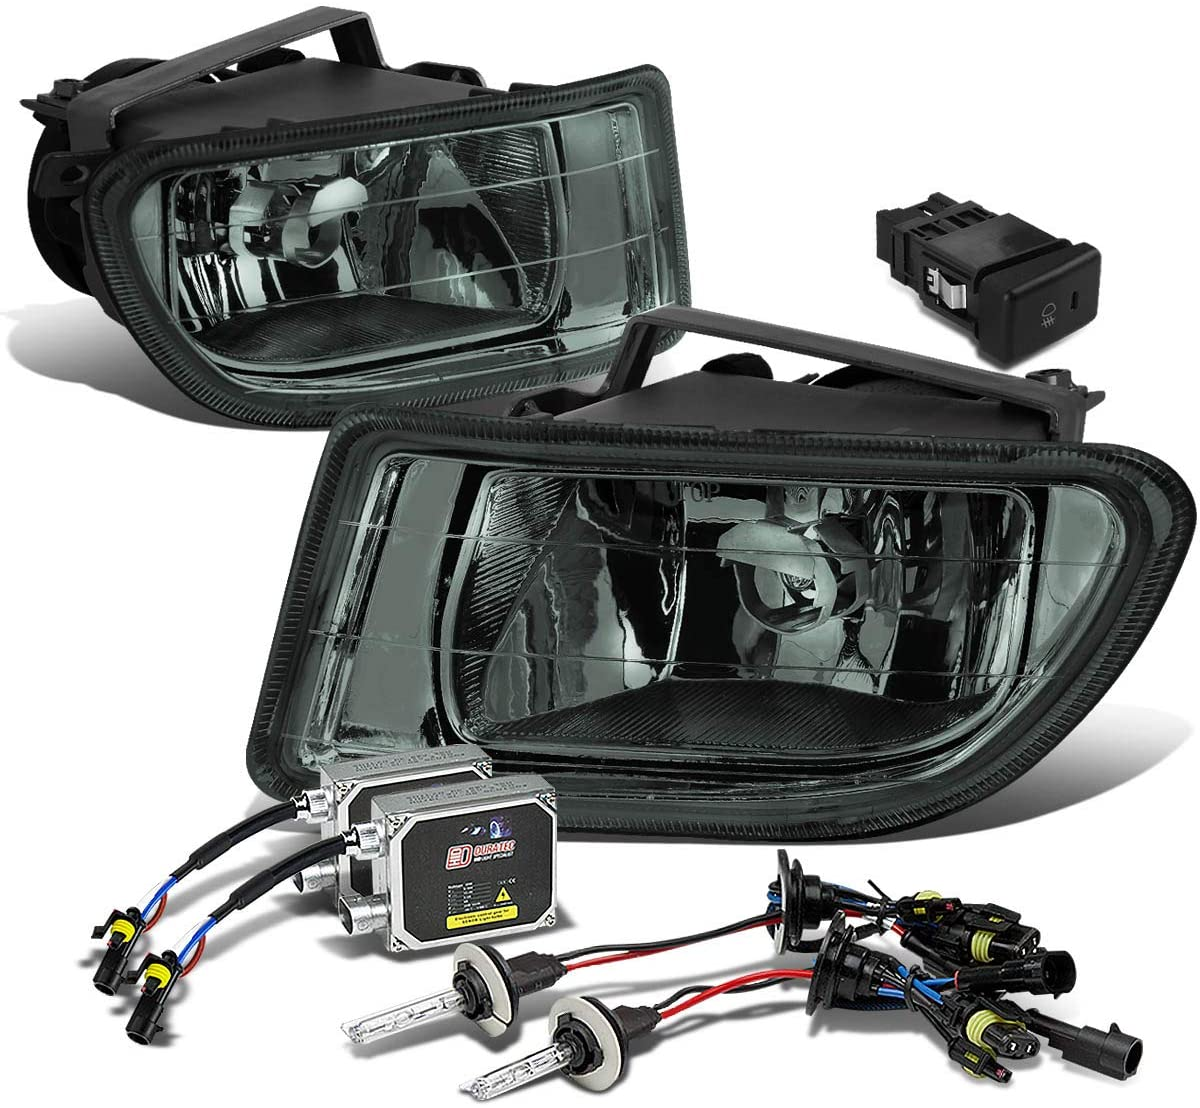 Replacement for Honda Odyssey RL1 Pair of Smoked Lens Bumper Driving Fog Lights + Switch + 4300K HID + Thick Ballasts